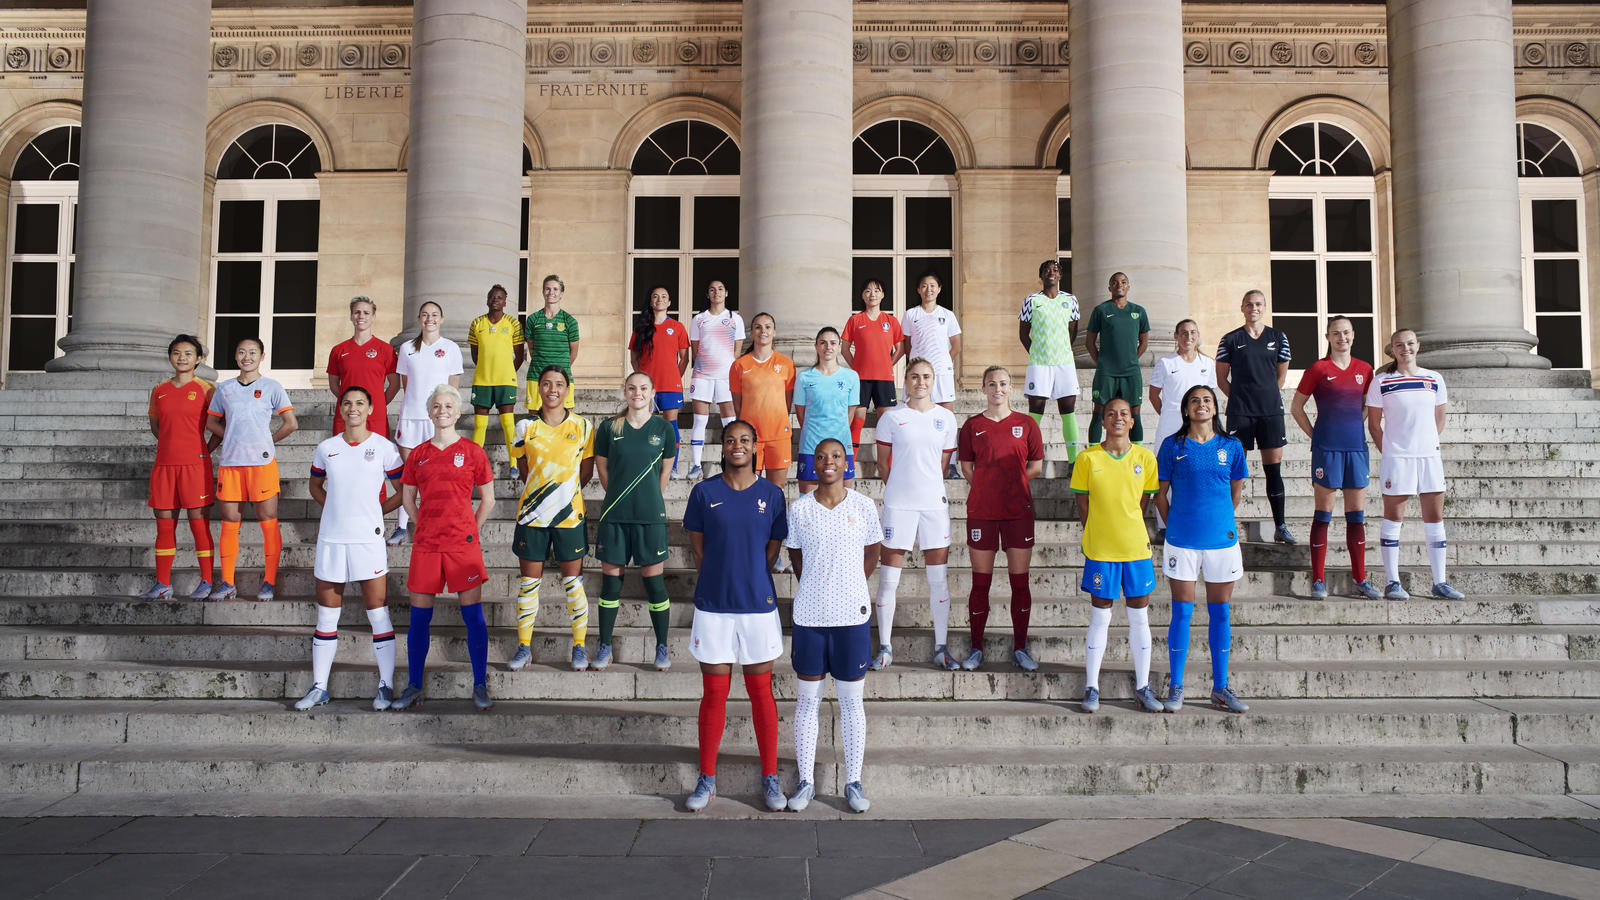 Nike-National-Team-Kit-Group-Paris-Elaine-Constantine-1_hd_1600